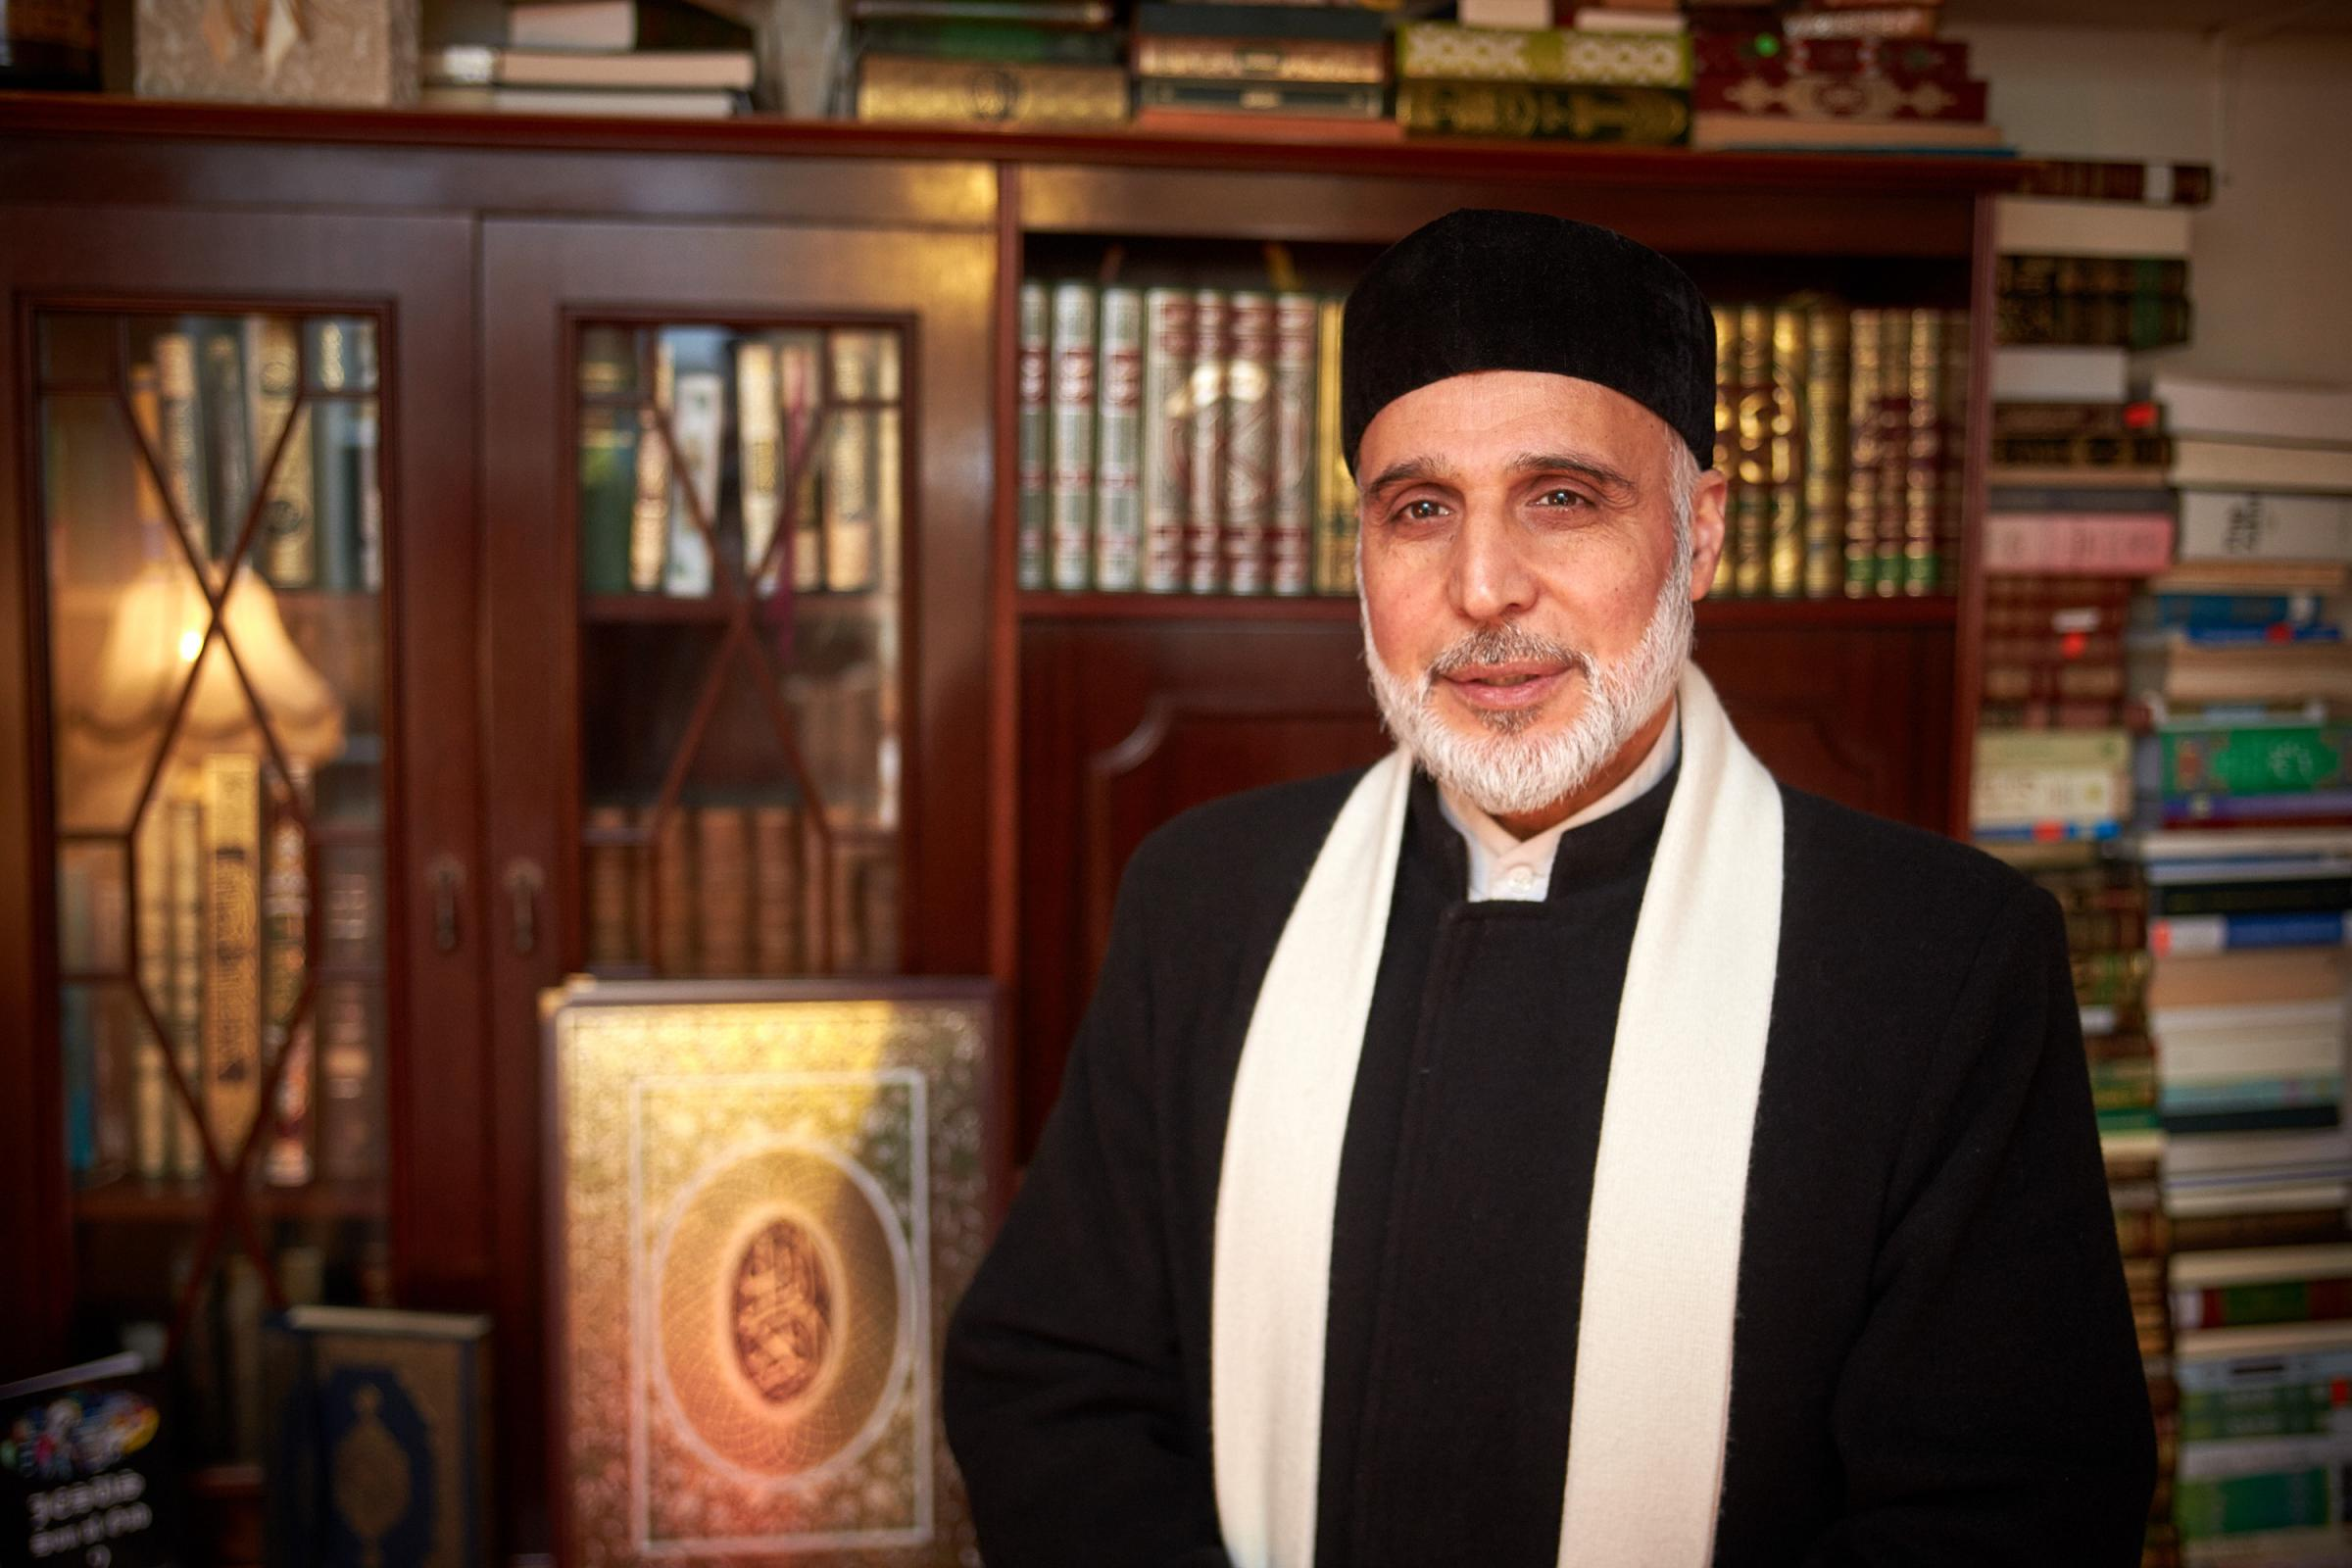 Dr Hojjat Ramzy, Imam and director of the Oxford Islamic Information Centre